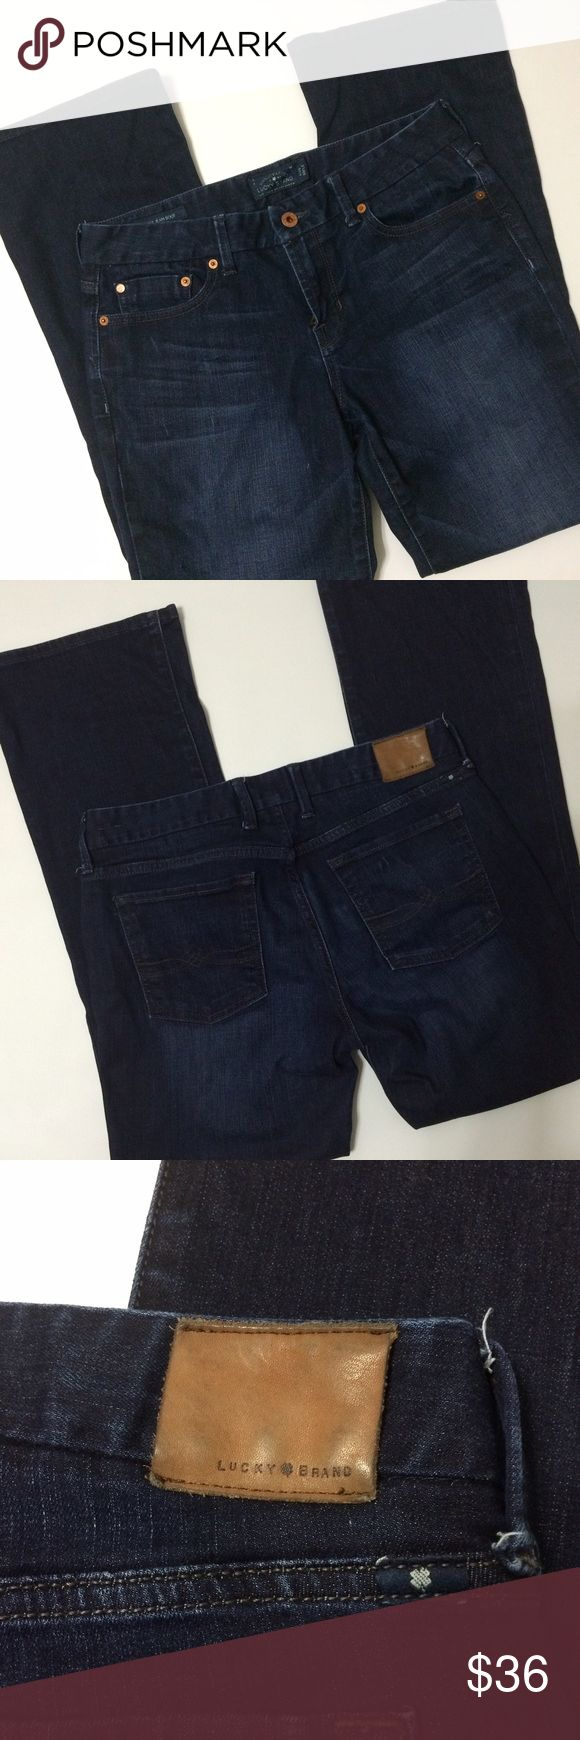 """Lucky Brand """"Sweet Jean Boot"""" Jean Beautiful darker pretty blue color blue jean...these are in great shape and are size 8/29 with a waist measuring 16.25-16.5"""" across laying flat and 29.5"""" inseam with about a 8.5"""" rise. The """"sweet boot"""" cuff is 9"""" they just seem to taper out a little around knee...bundle to save more plus ⚡️📦📫😄💕 Lucky Brand Jeans Boot Cut"""